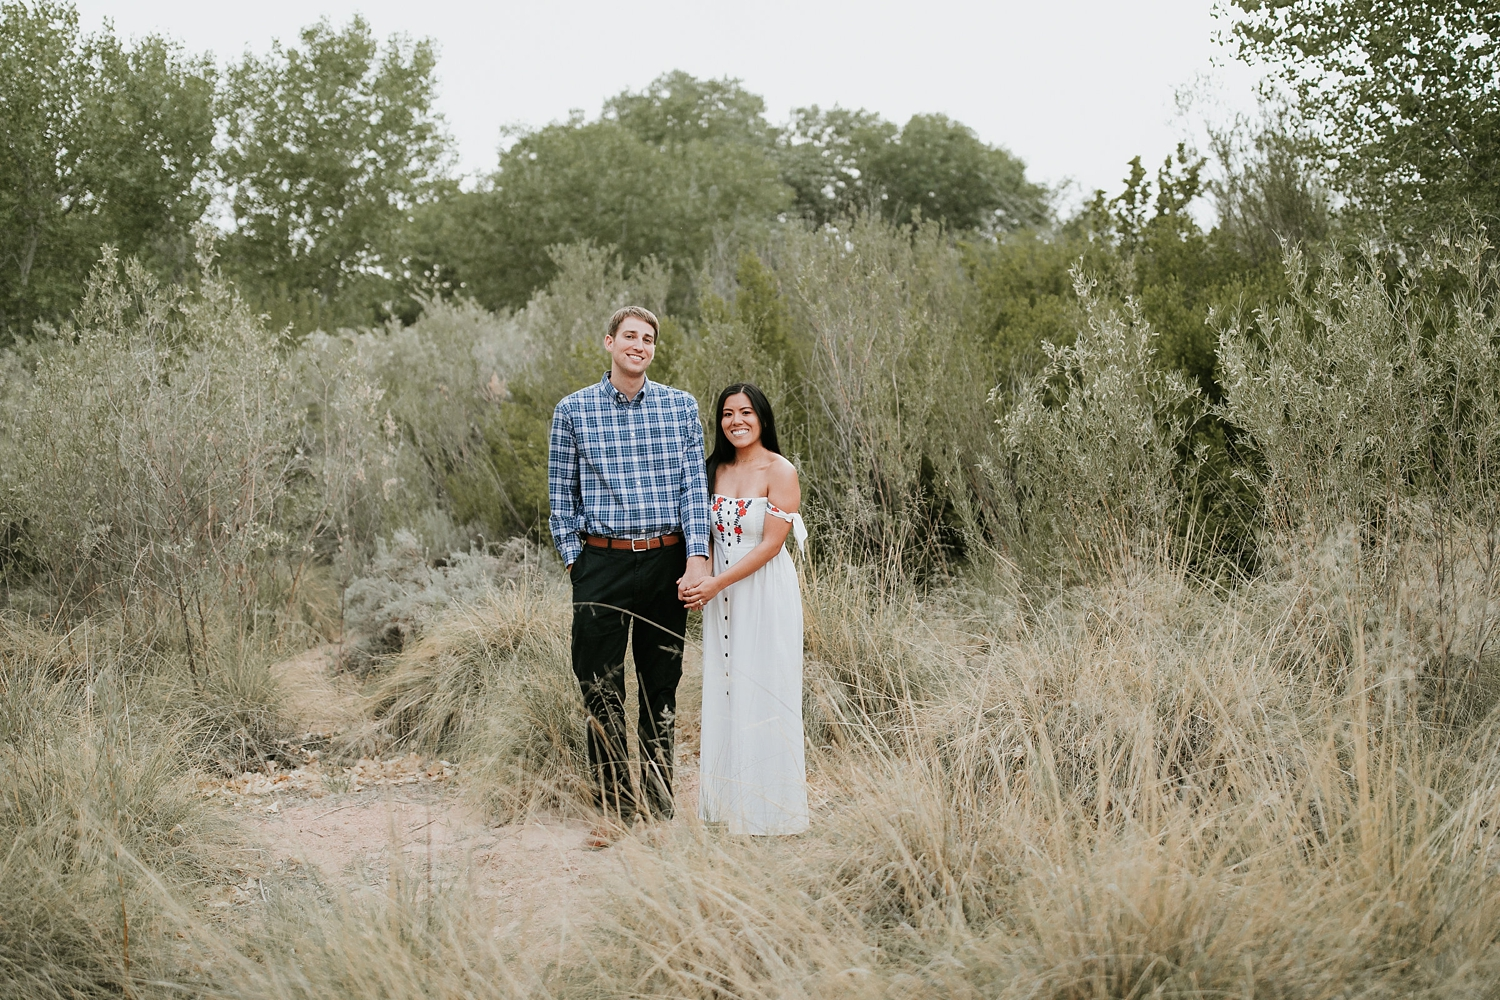 Alicia+lucia+photography+-+albuquerque+wedding+photographer+-+santa+fe+wedding+photography+-+new+mexico+wedding+photographer+-+new+mexico+engagement+-+new+mexico+summer+engagement_0001.jpg